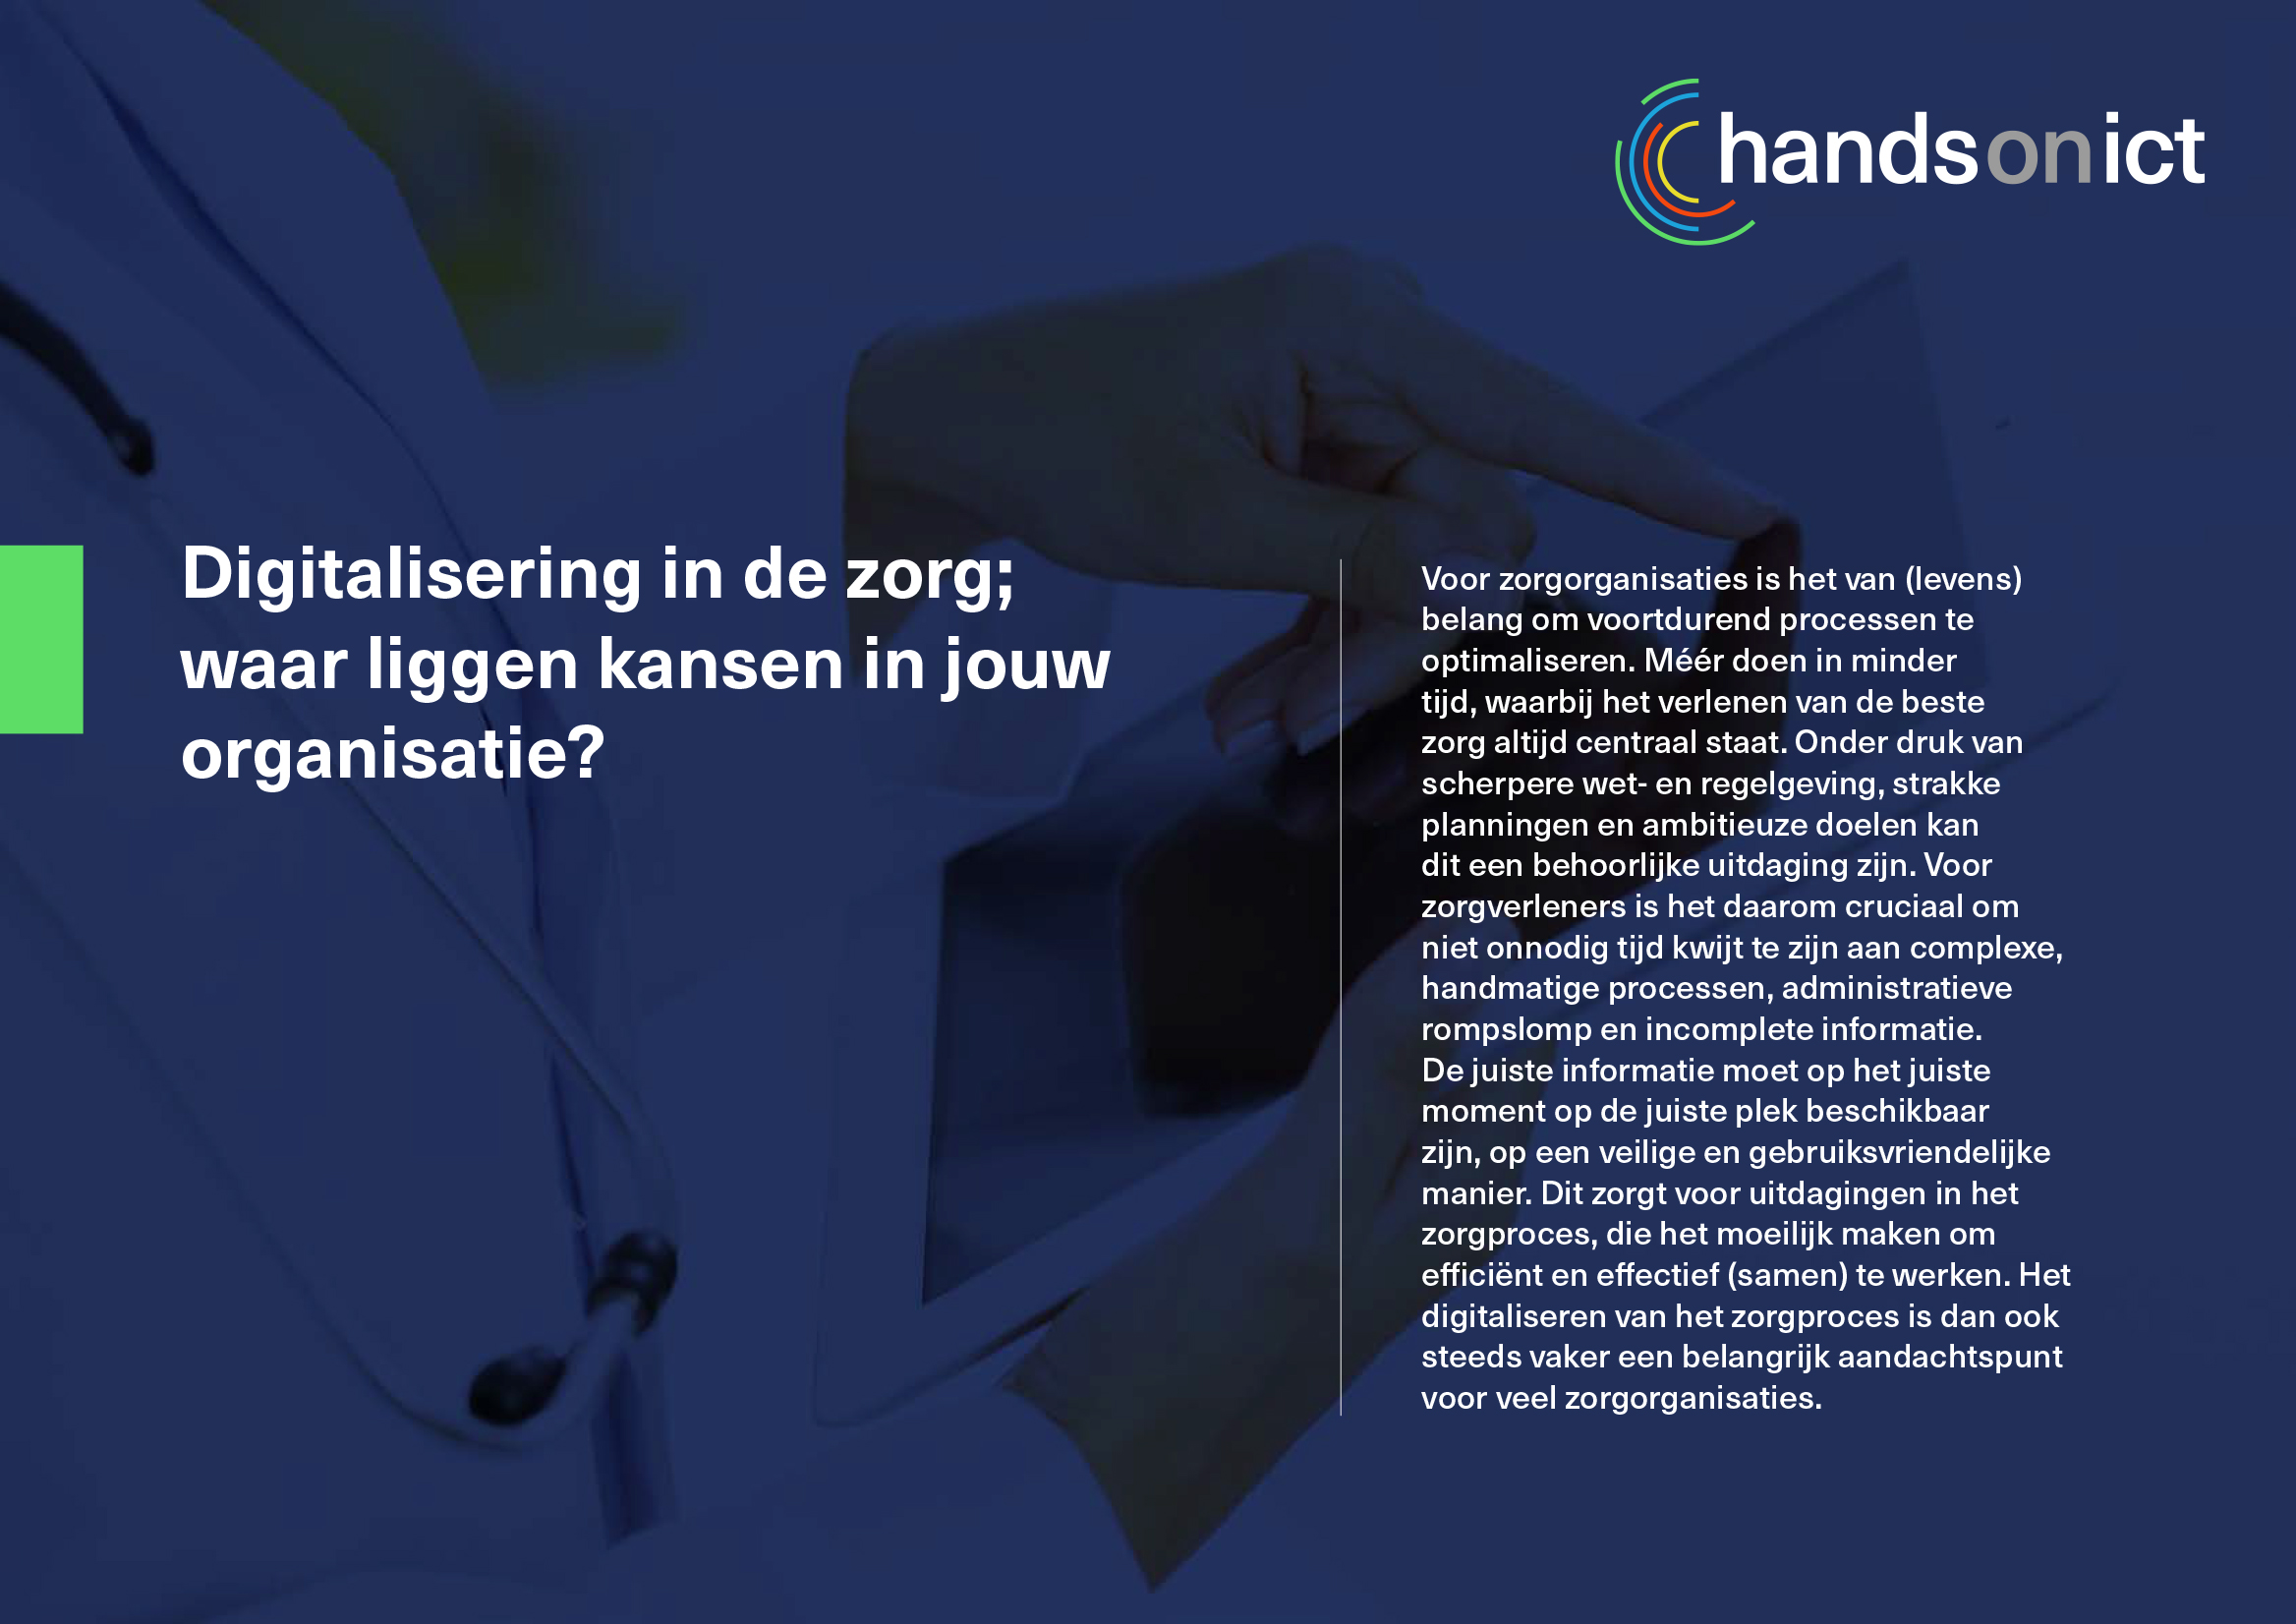 Sneak preview_1 whitepaper digitalisering in de zorg